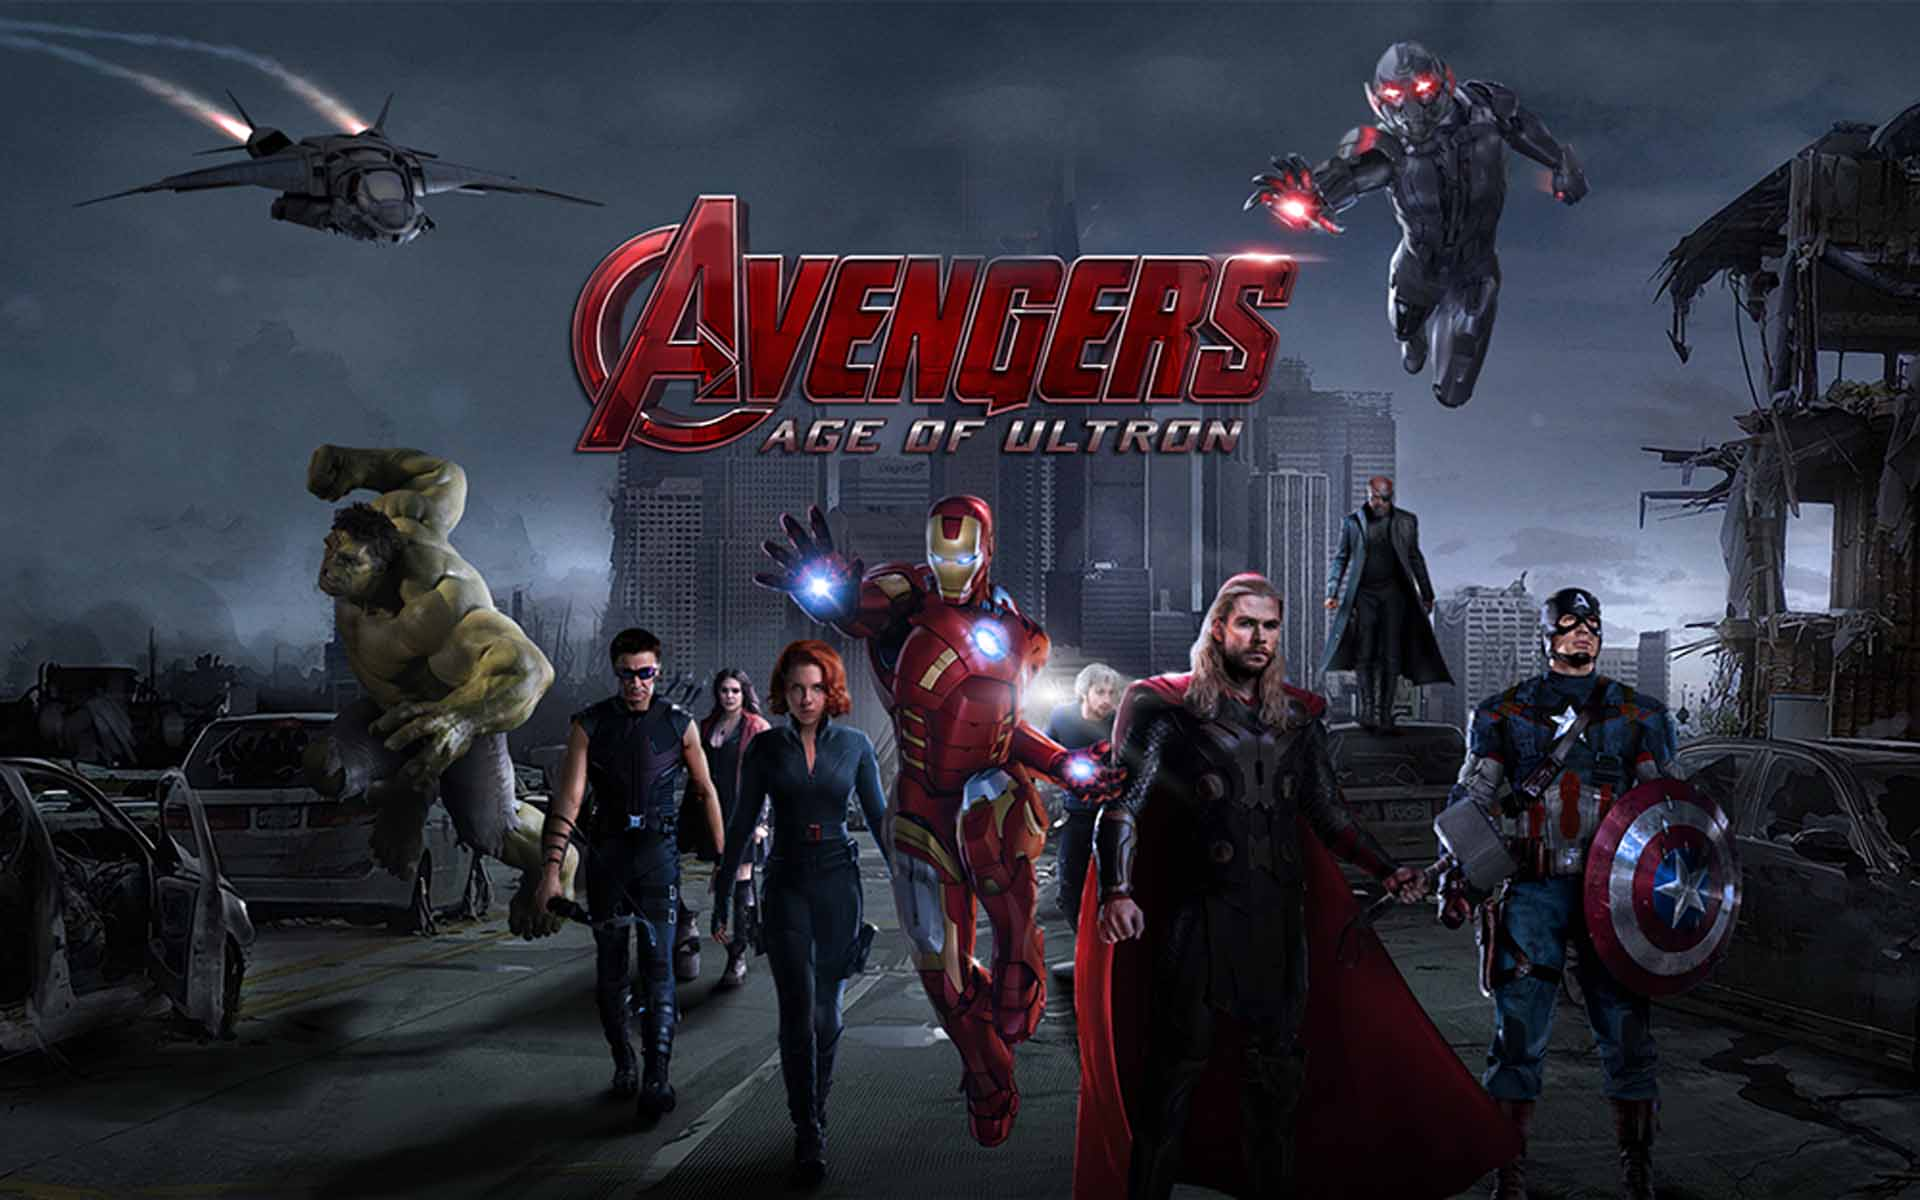 Avengers age of ultron team   movie wallpapers.